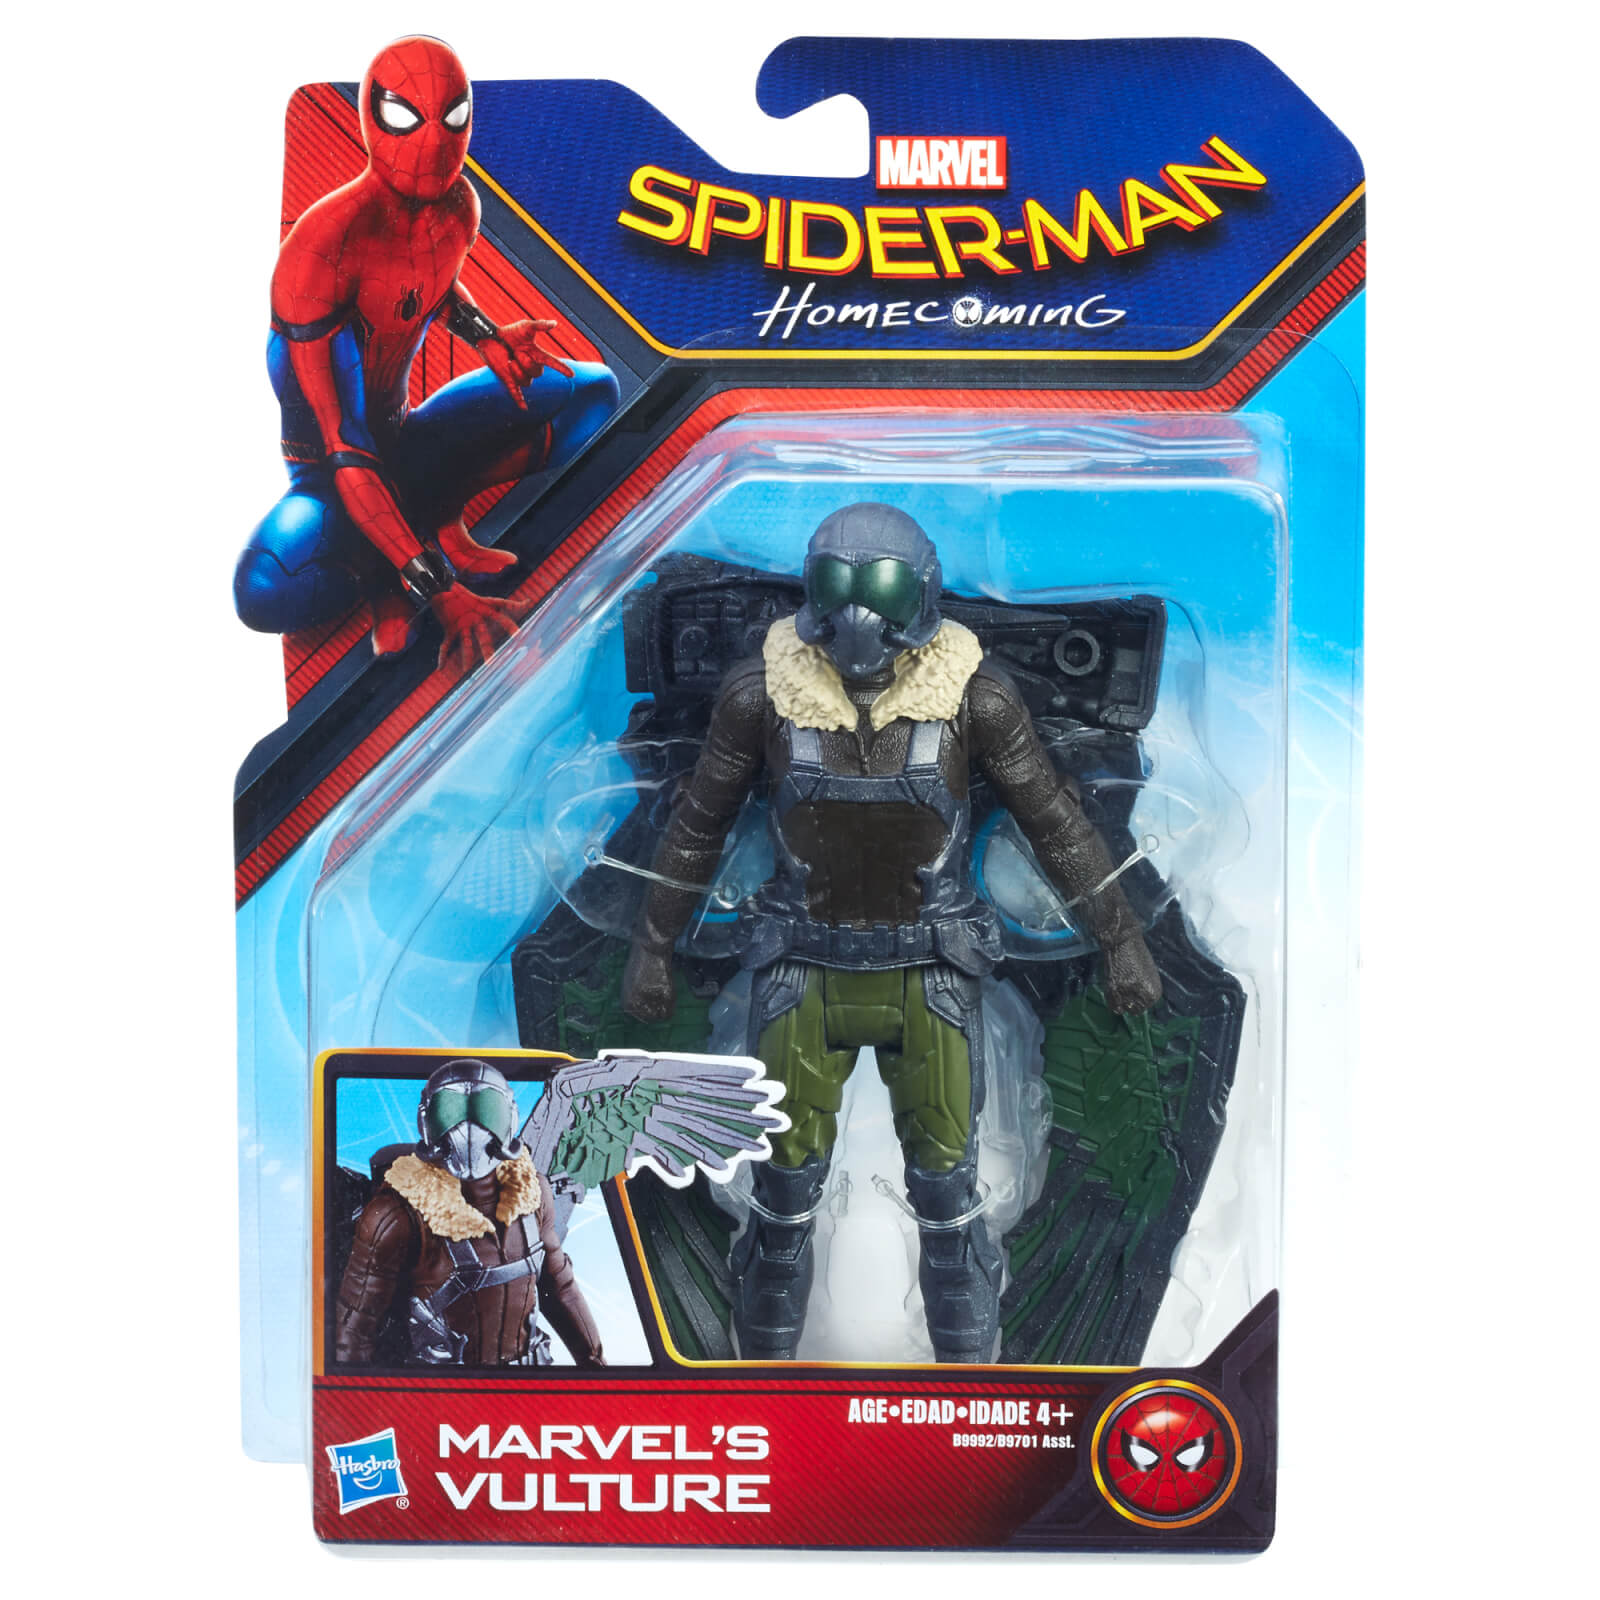 Hasbro Spider-Man Homecoming Action Figure - Marvel